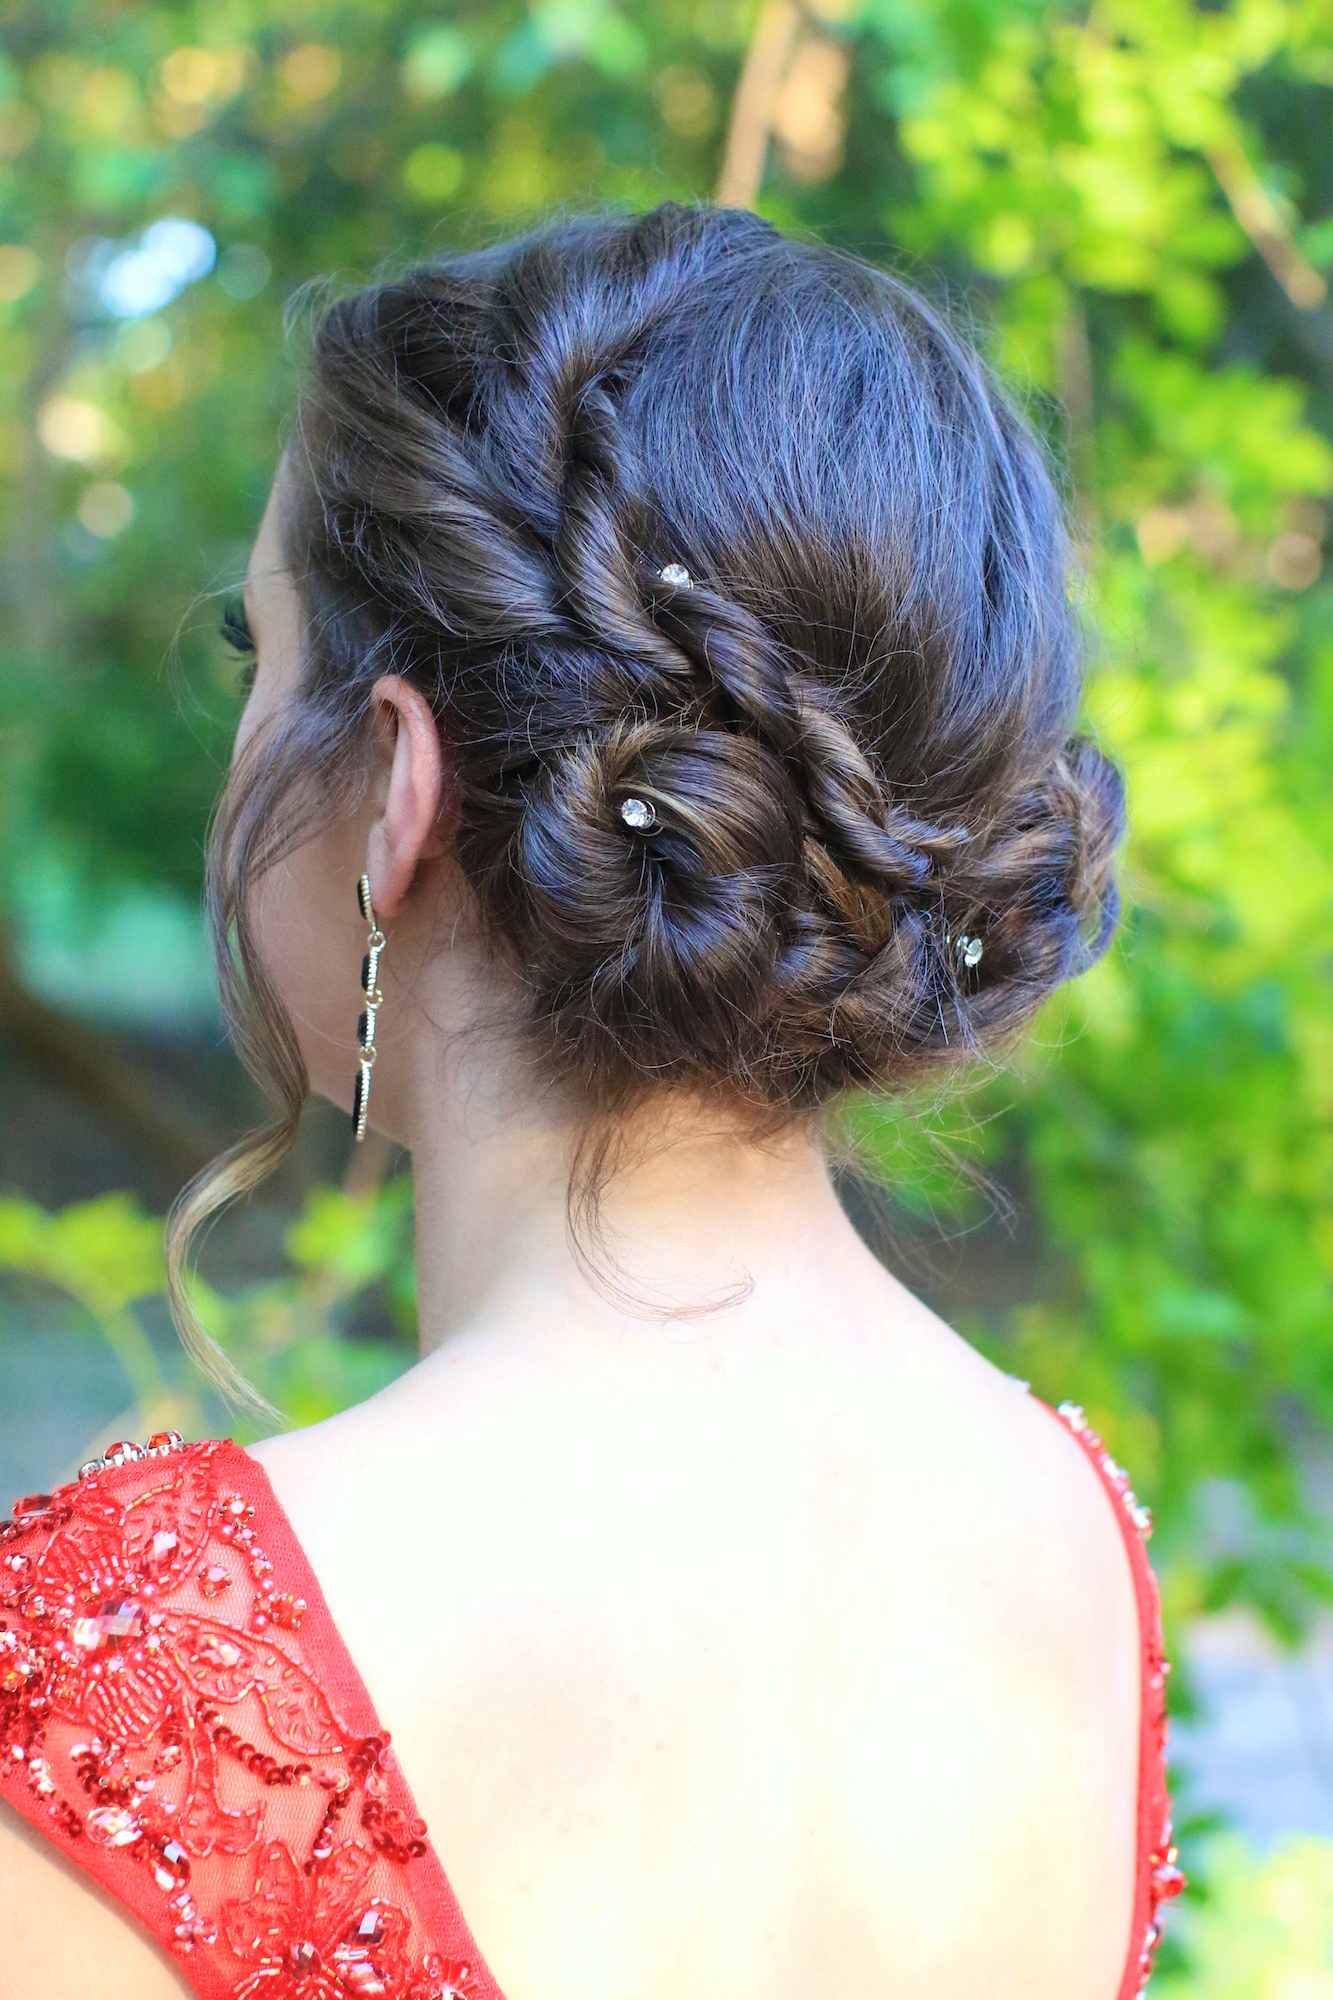 hairstyles homecoming twist rope updo cute hair simple short prom hairstyle braids styles braid formal cgh twists hairdos cutegirlshairstyles dance